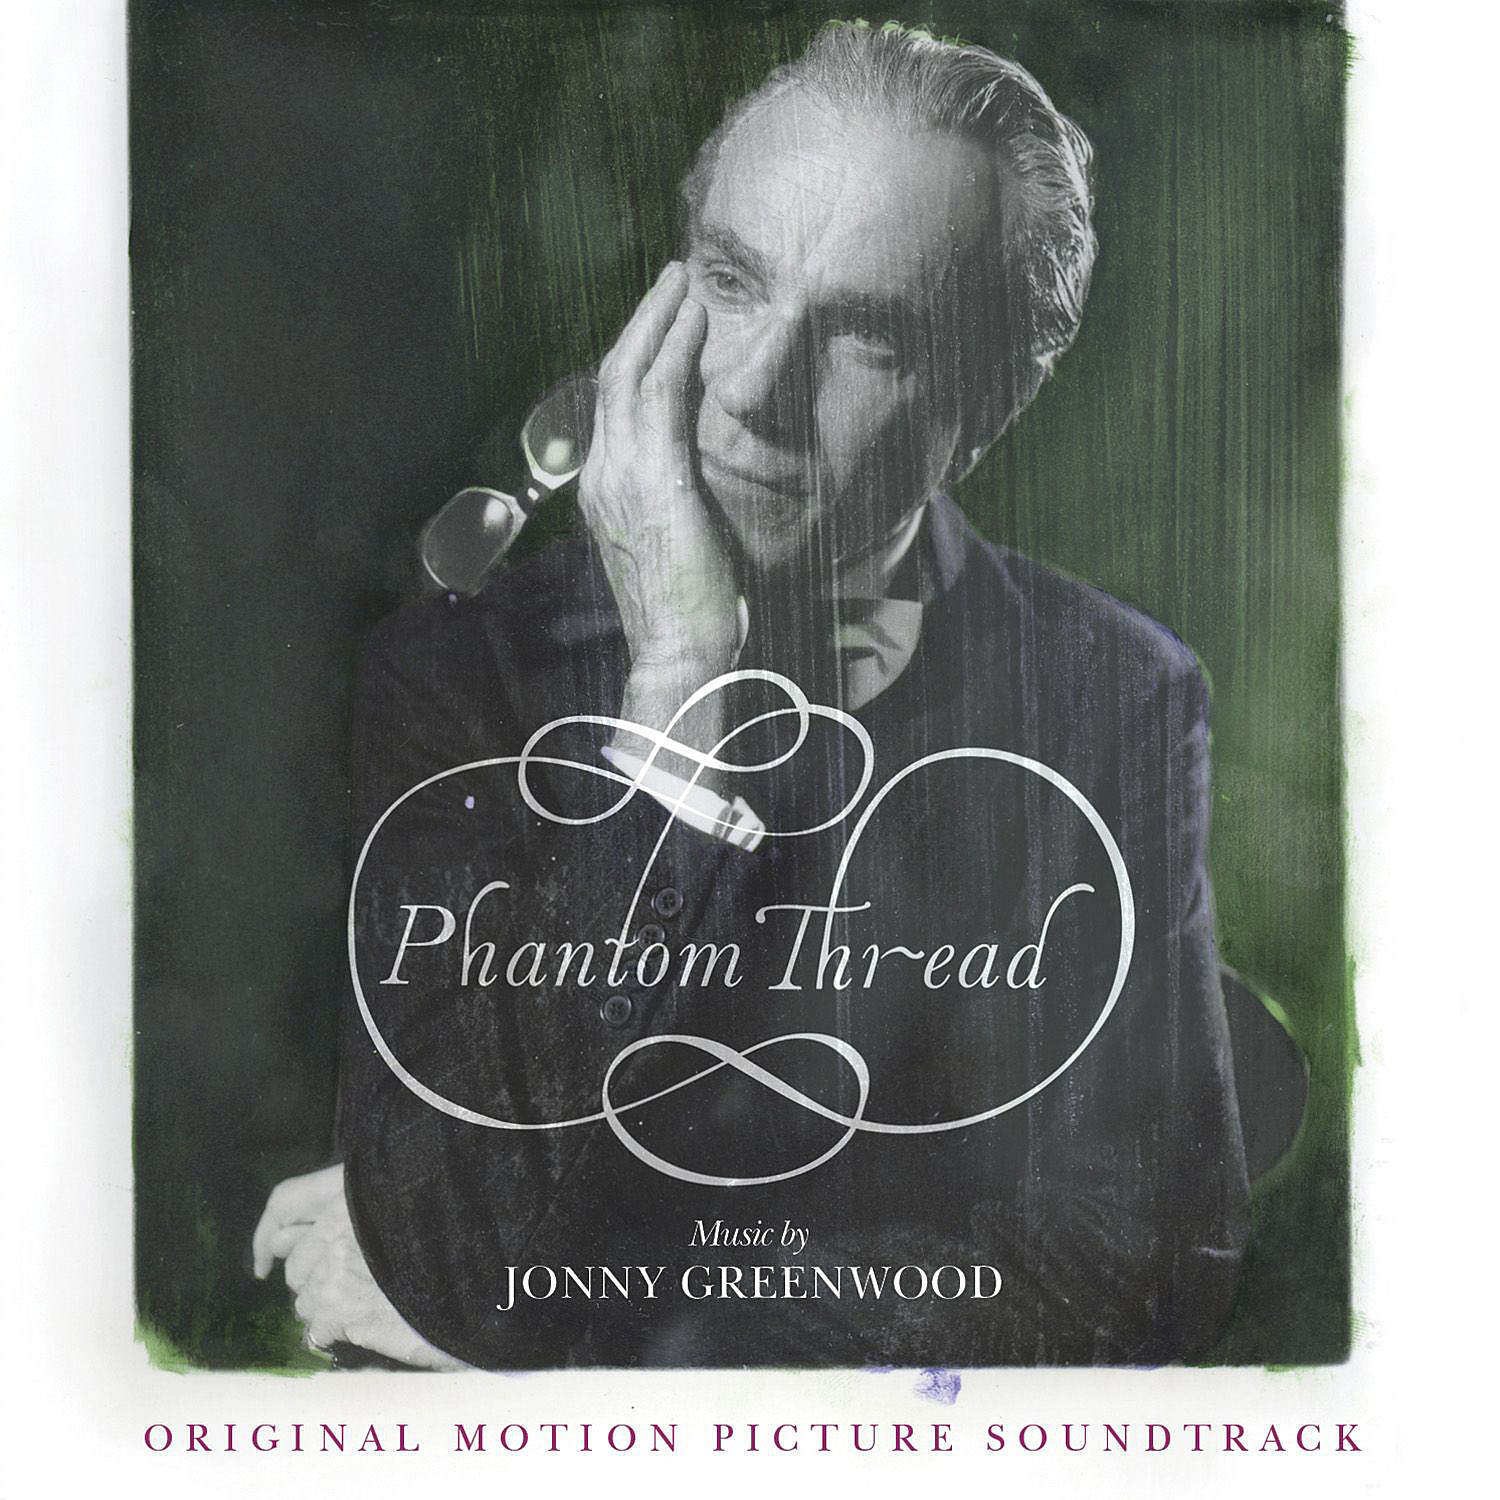 Phantom Thread score